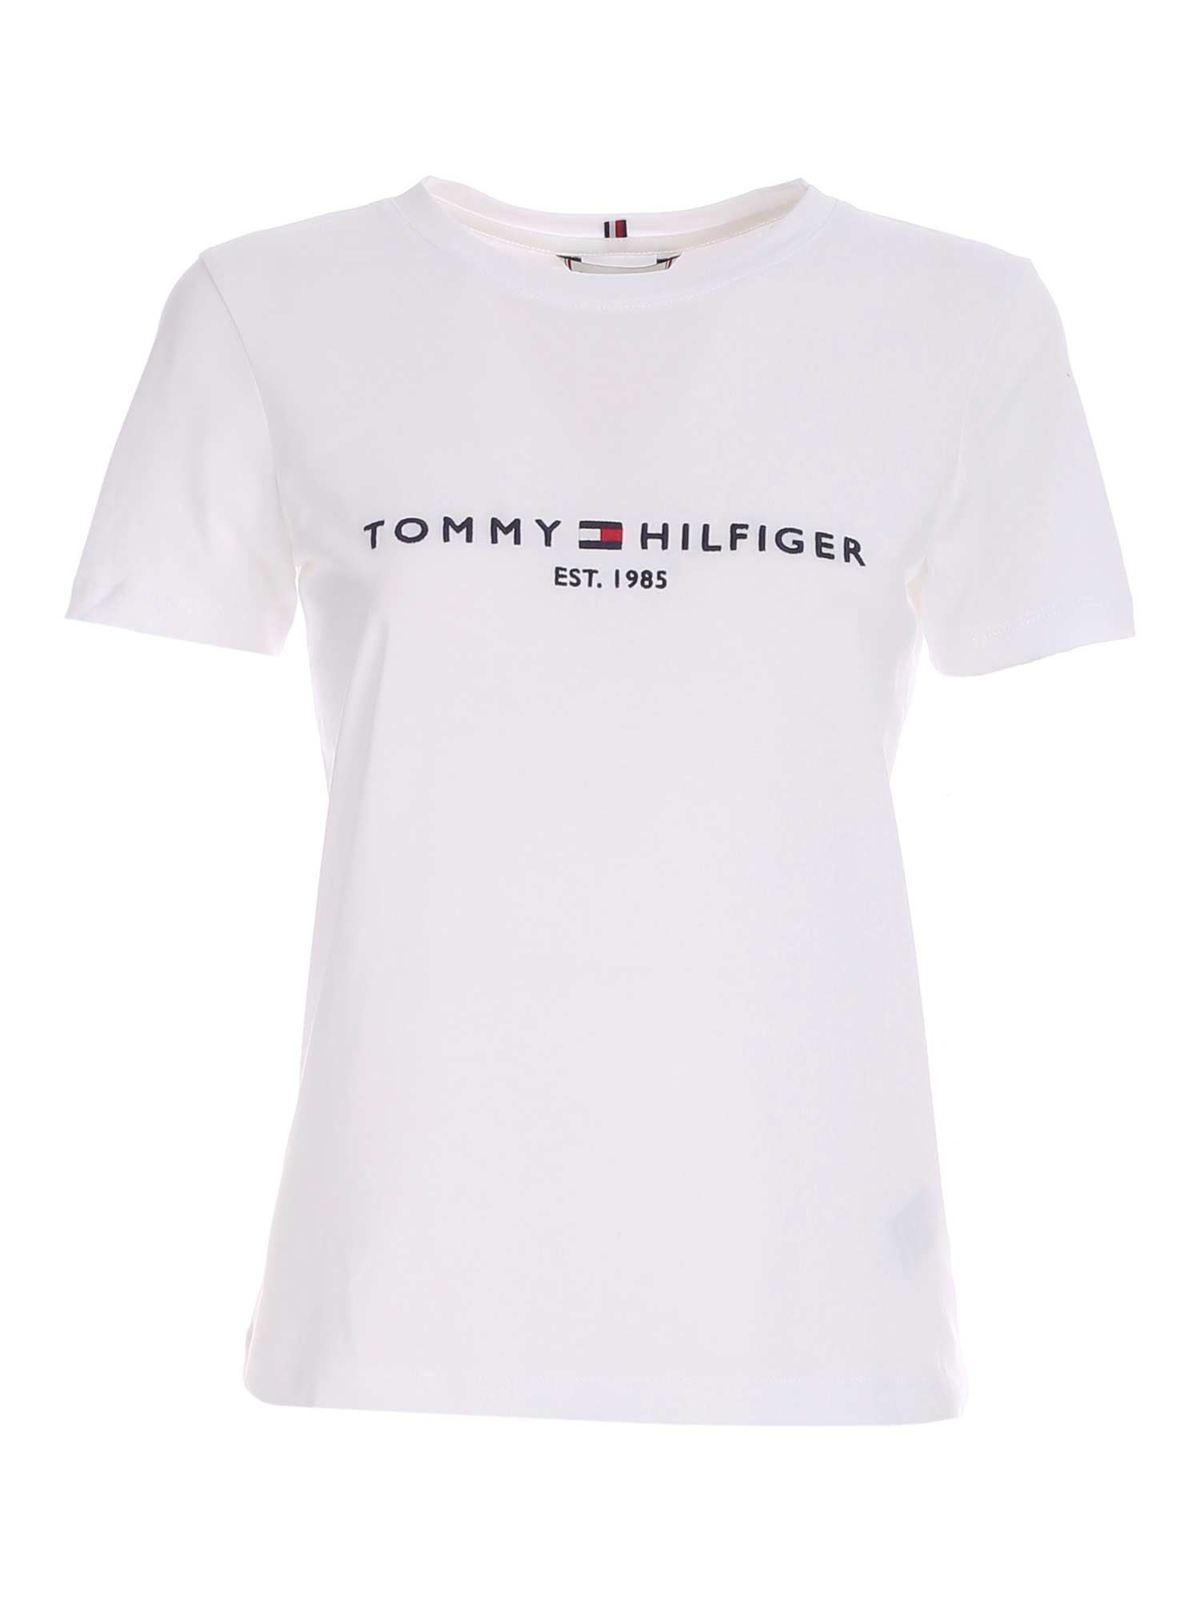 Tommy Hilfiger CONTRASTING EMBROIDERY T-SHIRT IN WHITE